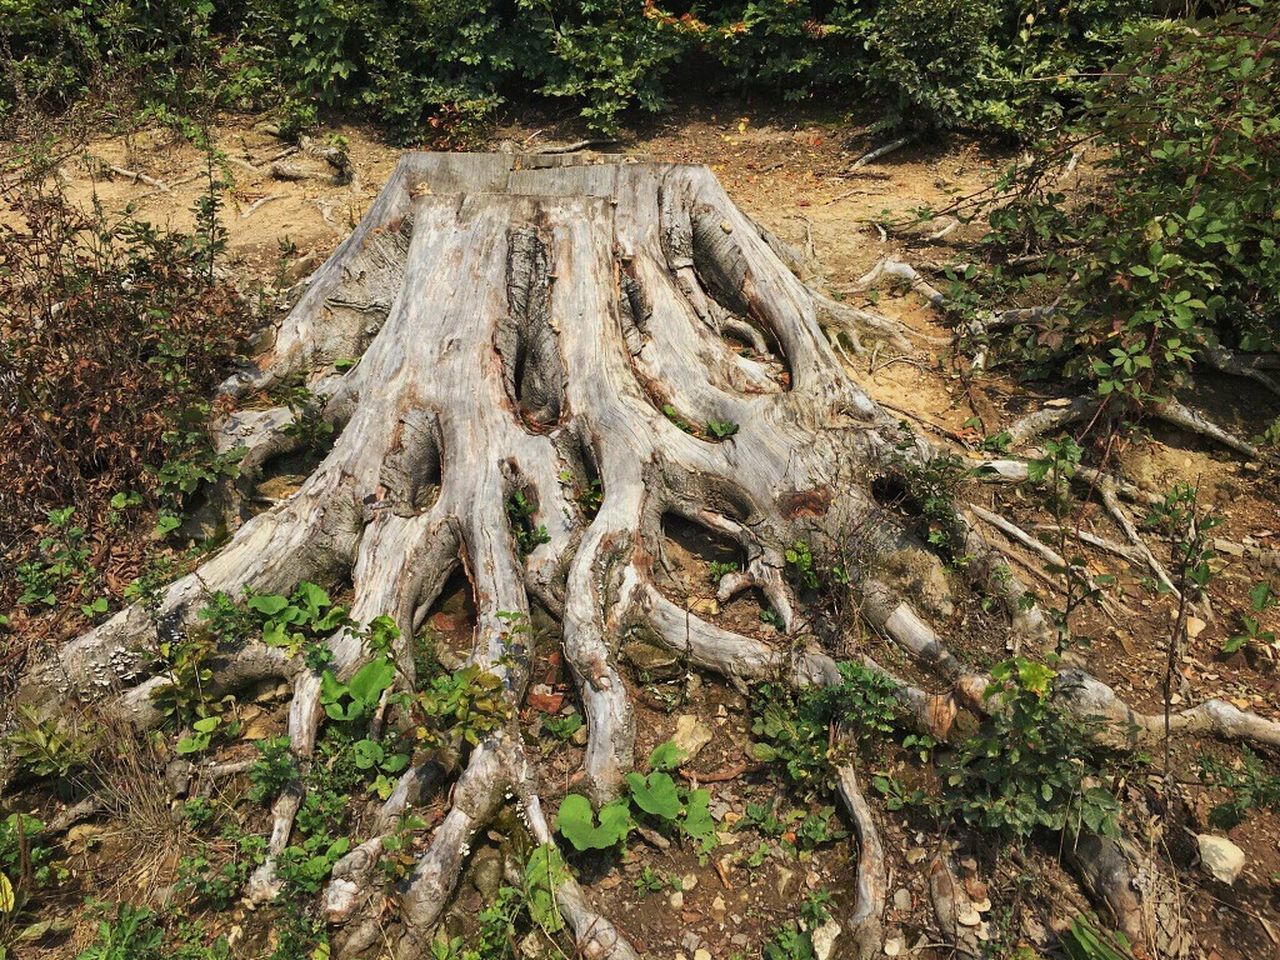 ✨Don't forget your roots✨ Tree Wood - Material Nature No People Growth Forest Tree Trunk Outdoors Photo EyeEm Gallery Capture The Moment EyeEm EyeEm Nature Lover Beauty In Nature Giant Wood Tree EyeEmBestPics Beautiful Nature Roots Of Tree Roots